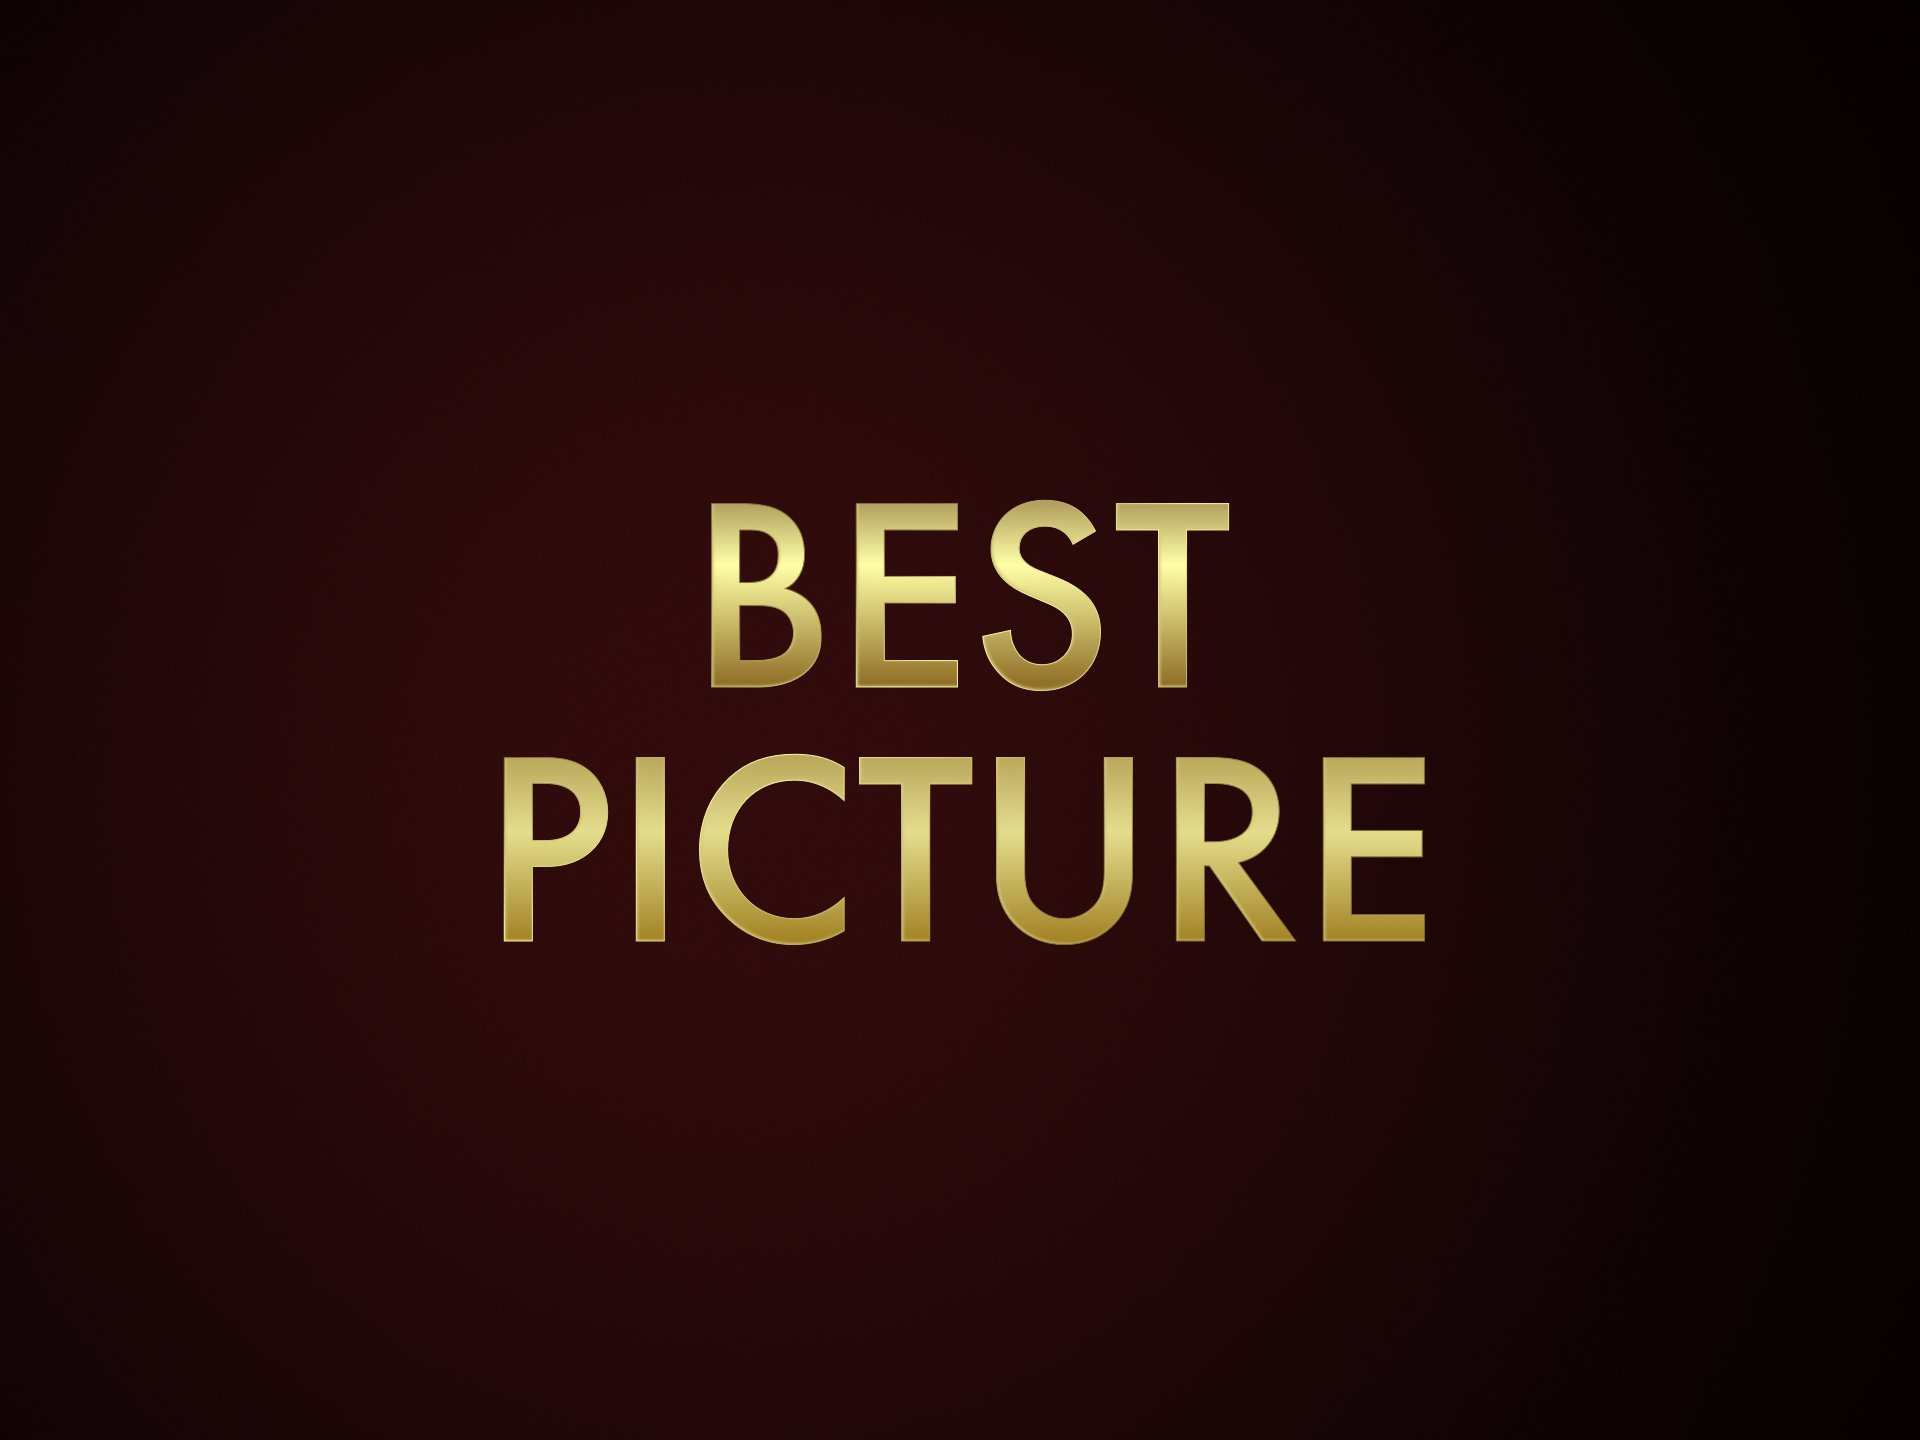 Best Picture Nominations Oscars 2020 - Oscars 2020 News ...